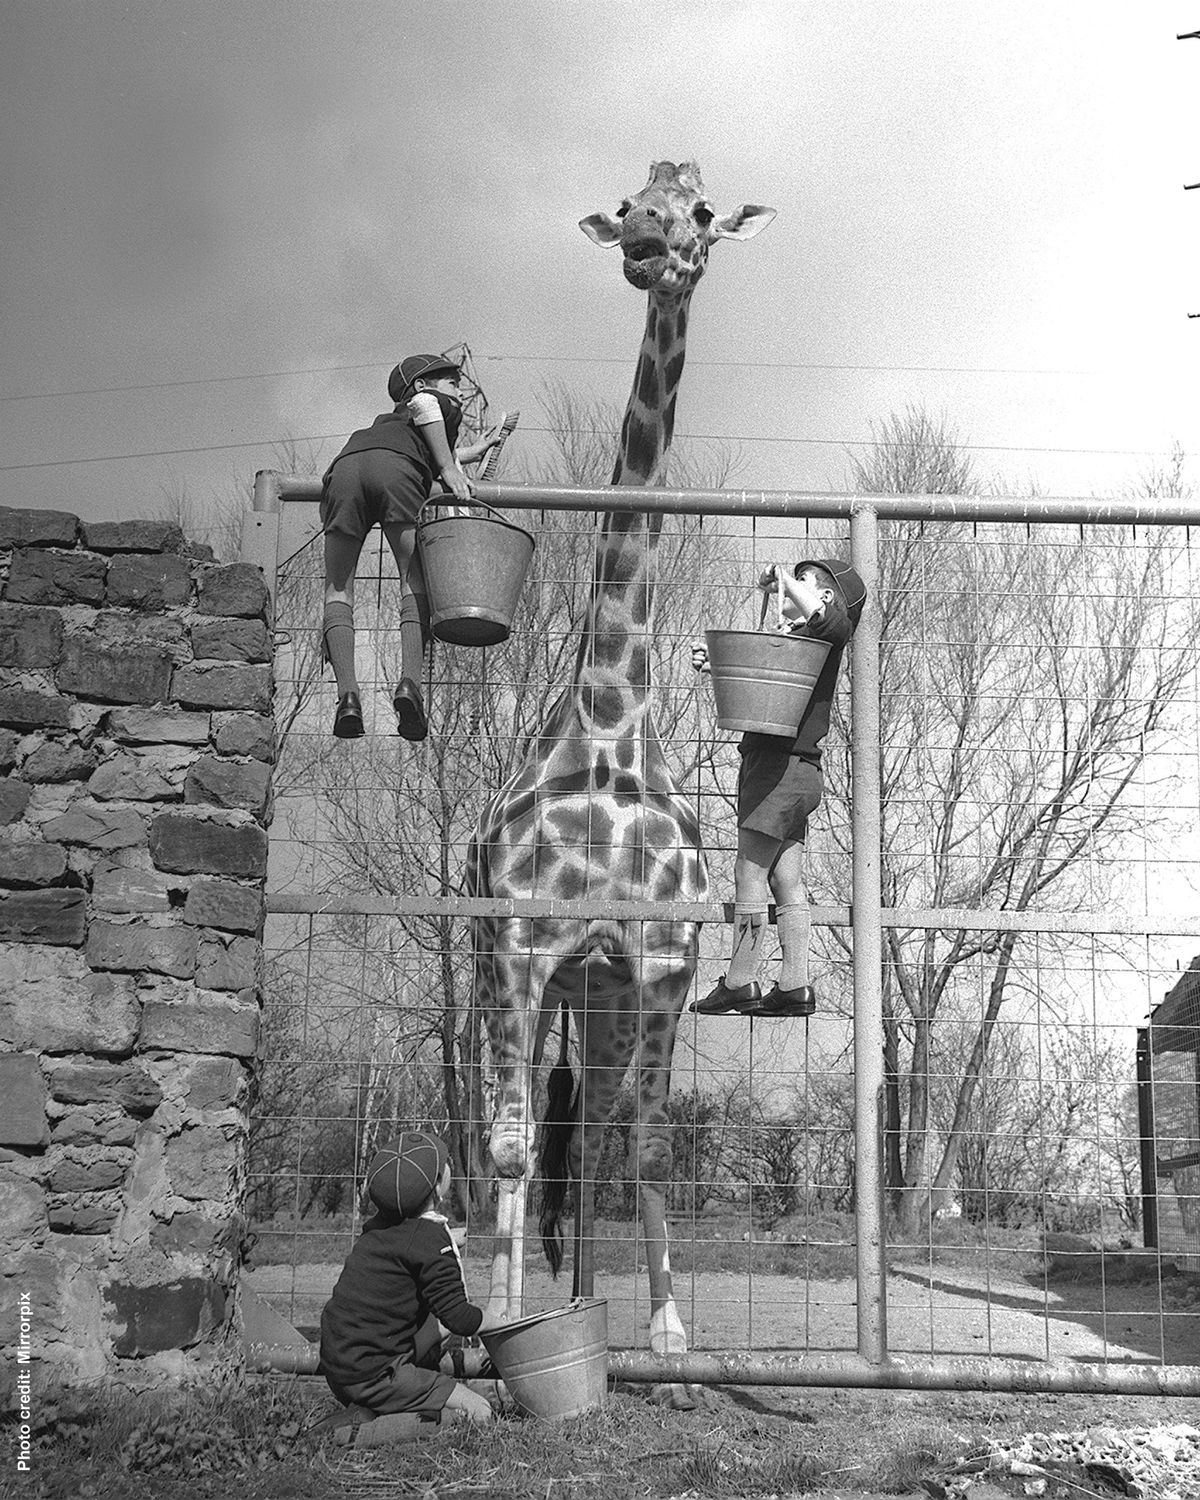 1960 - The tallest giraffe ever recorded (at the time) was a Masai bull living at Chester Zoo, named George. He featured in the Guinness Book of Records and measured just under 20 feet in height.